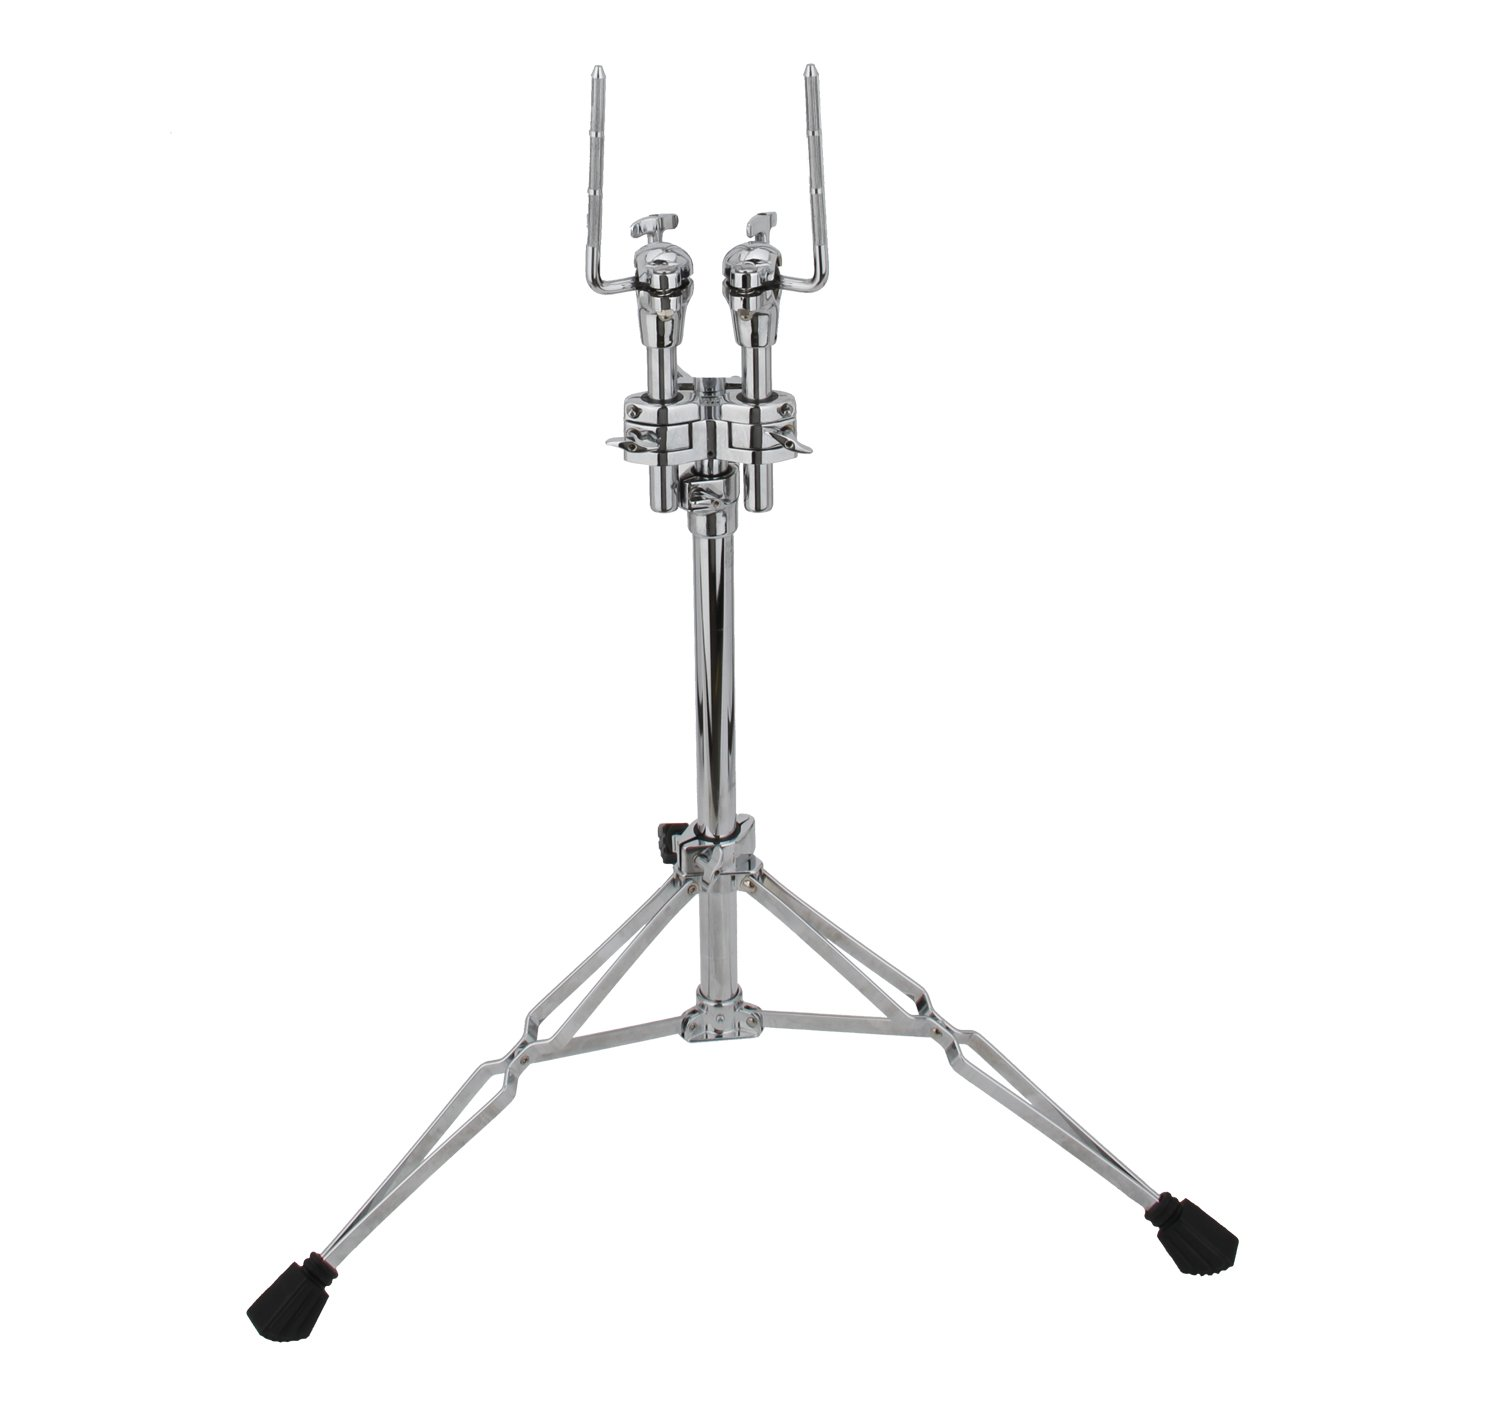 Taye Drums TTS6000 Tom Tom Stand